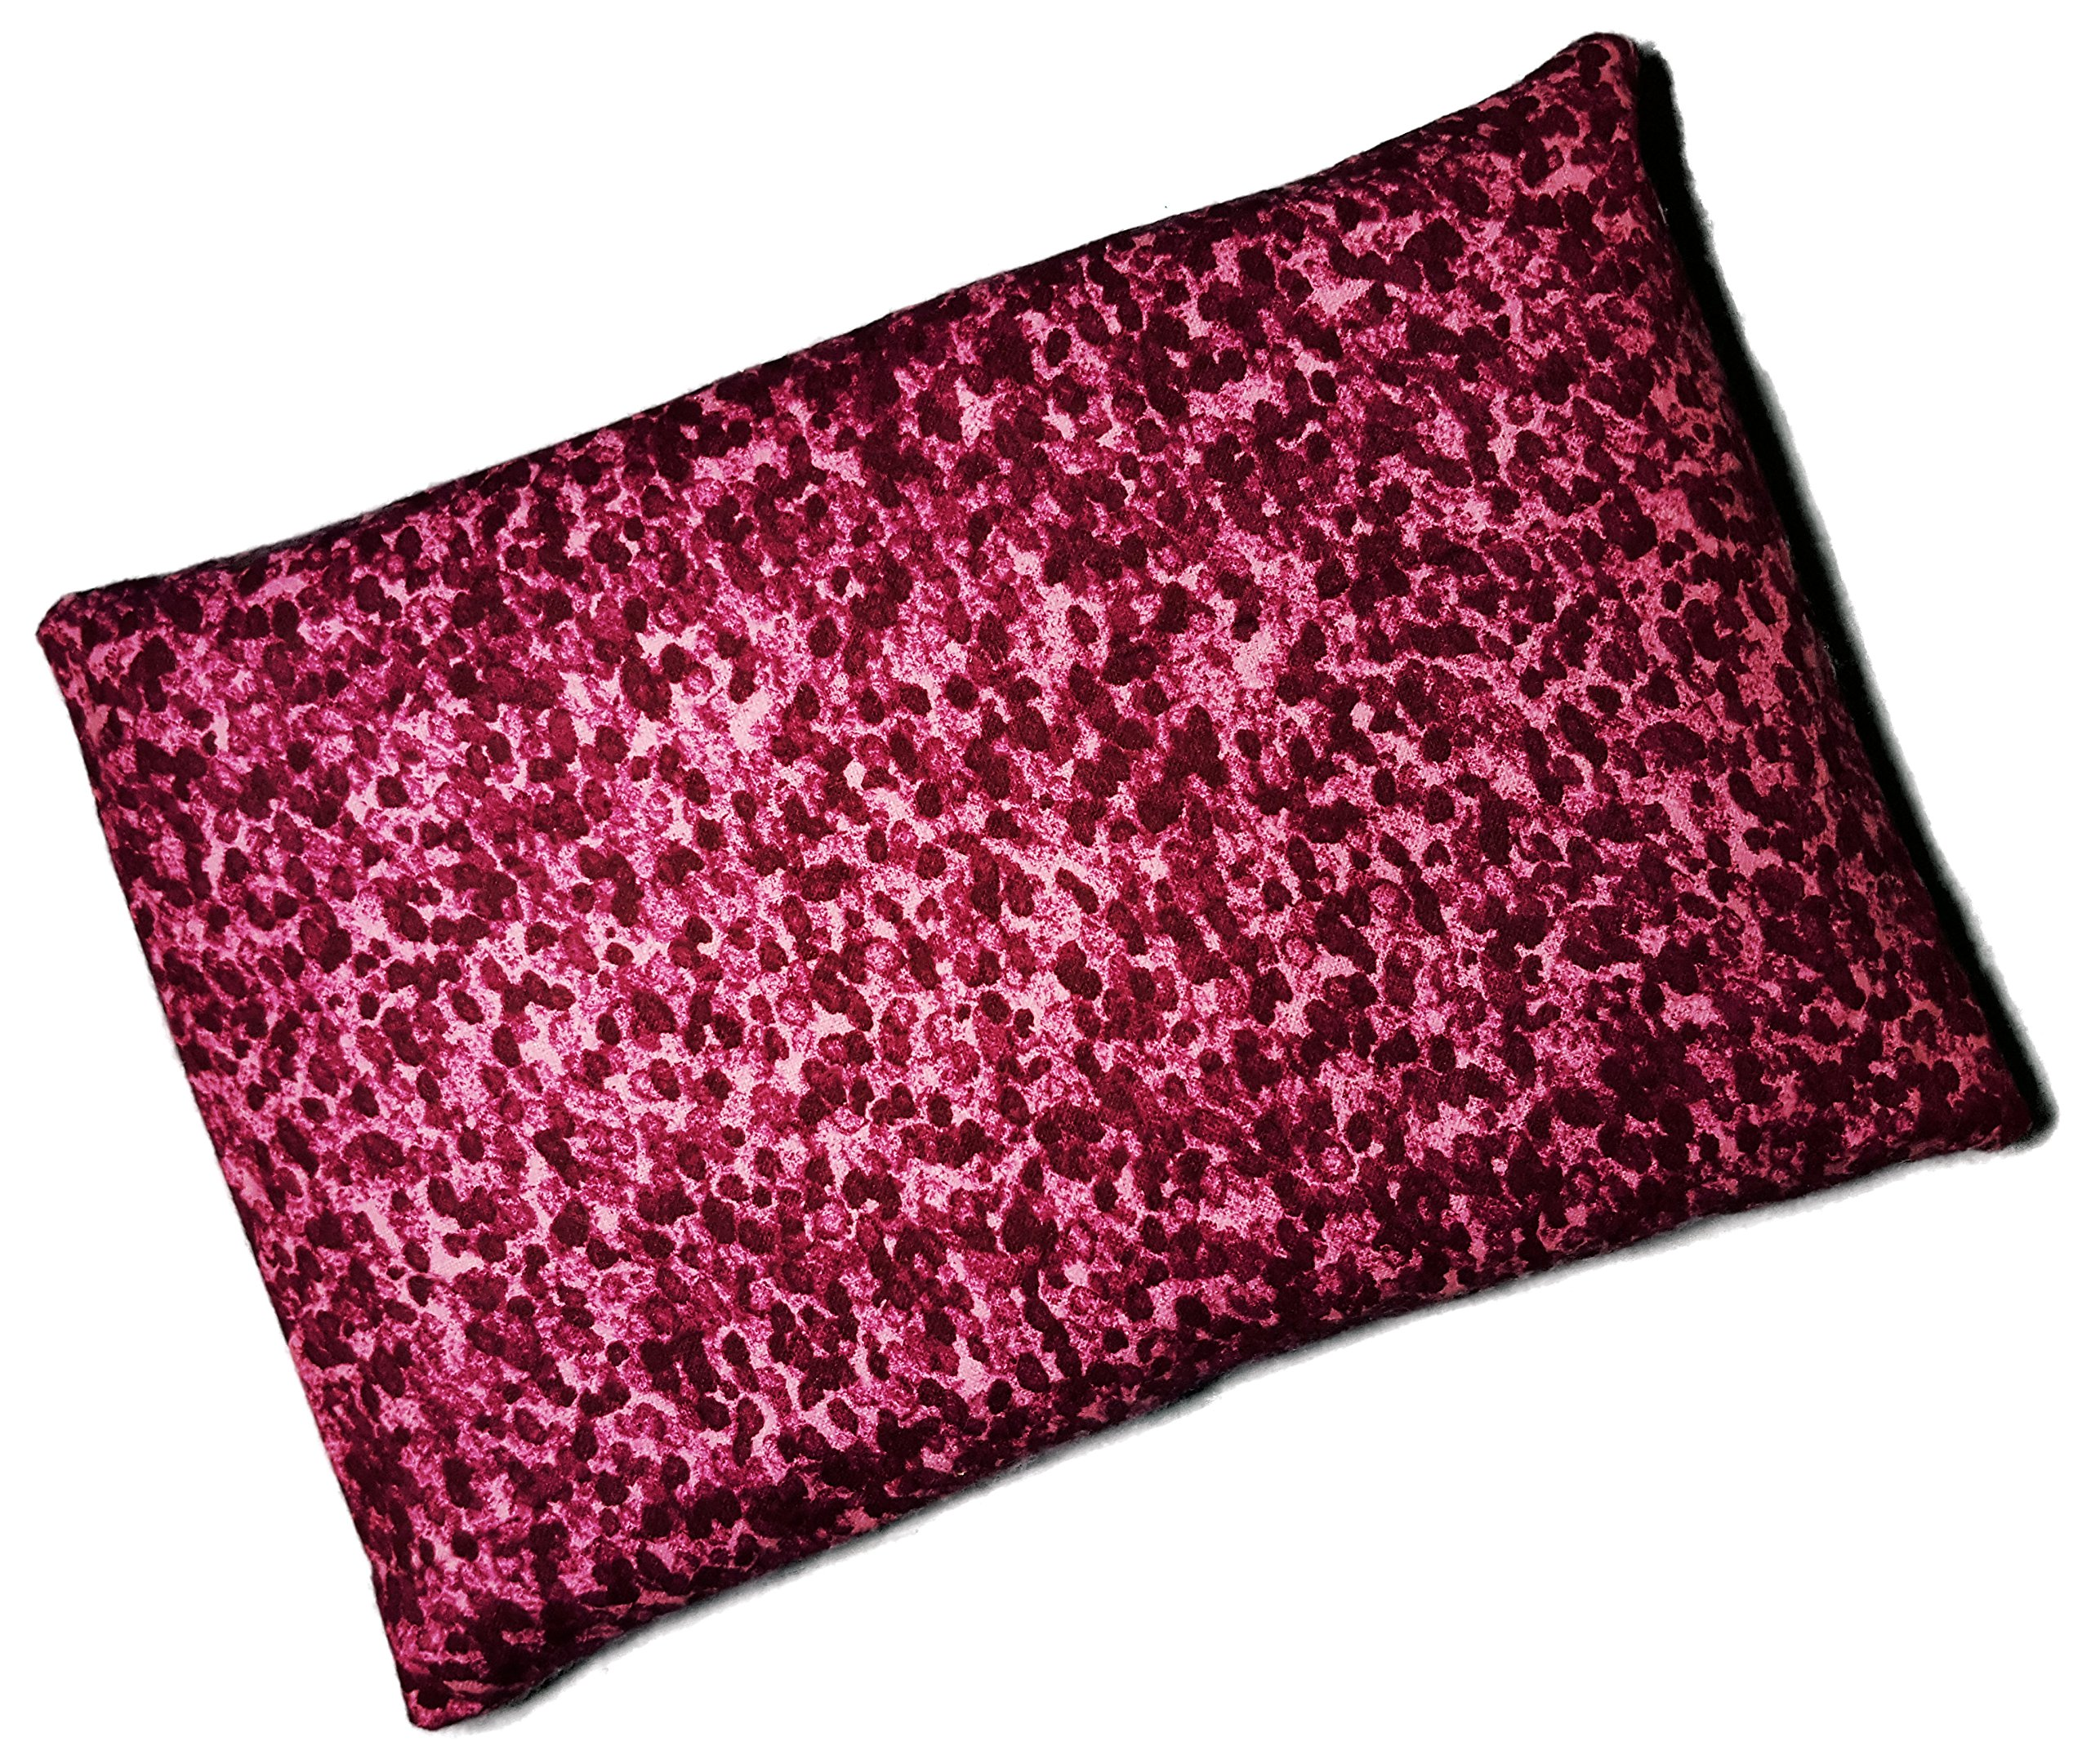 Microwavable Corn Filled Heating Pad and Cold Pack / Washable 100% Cotton Cover (7.5''Wx11''L, Watercolor Dot - Berry)